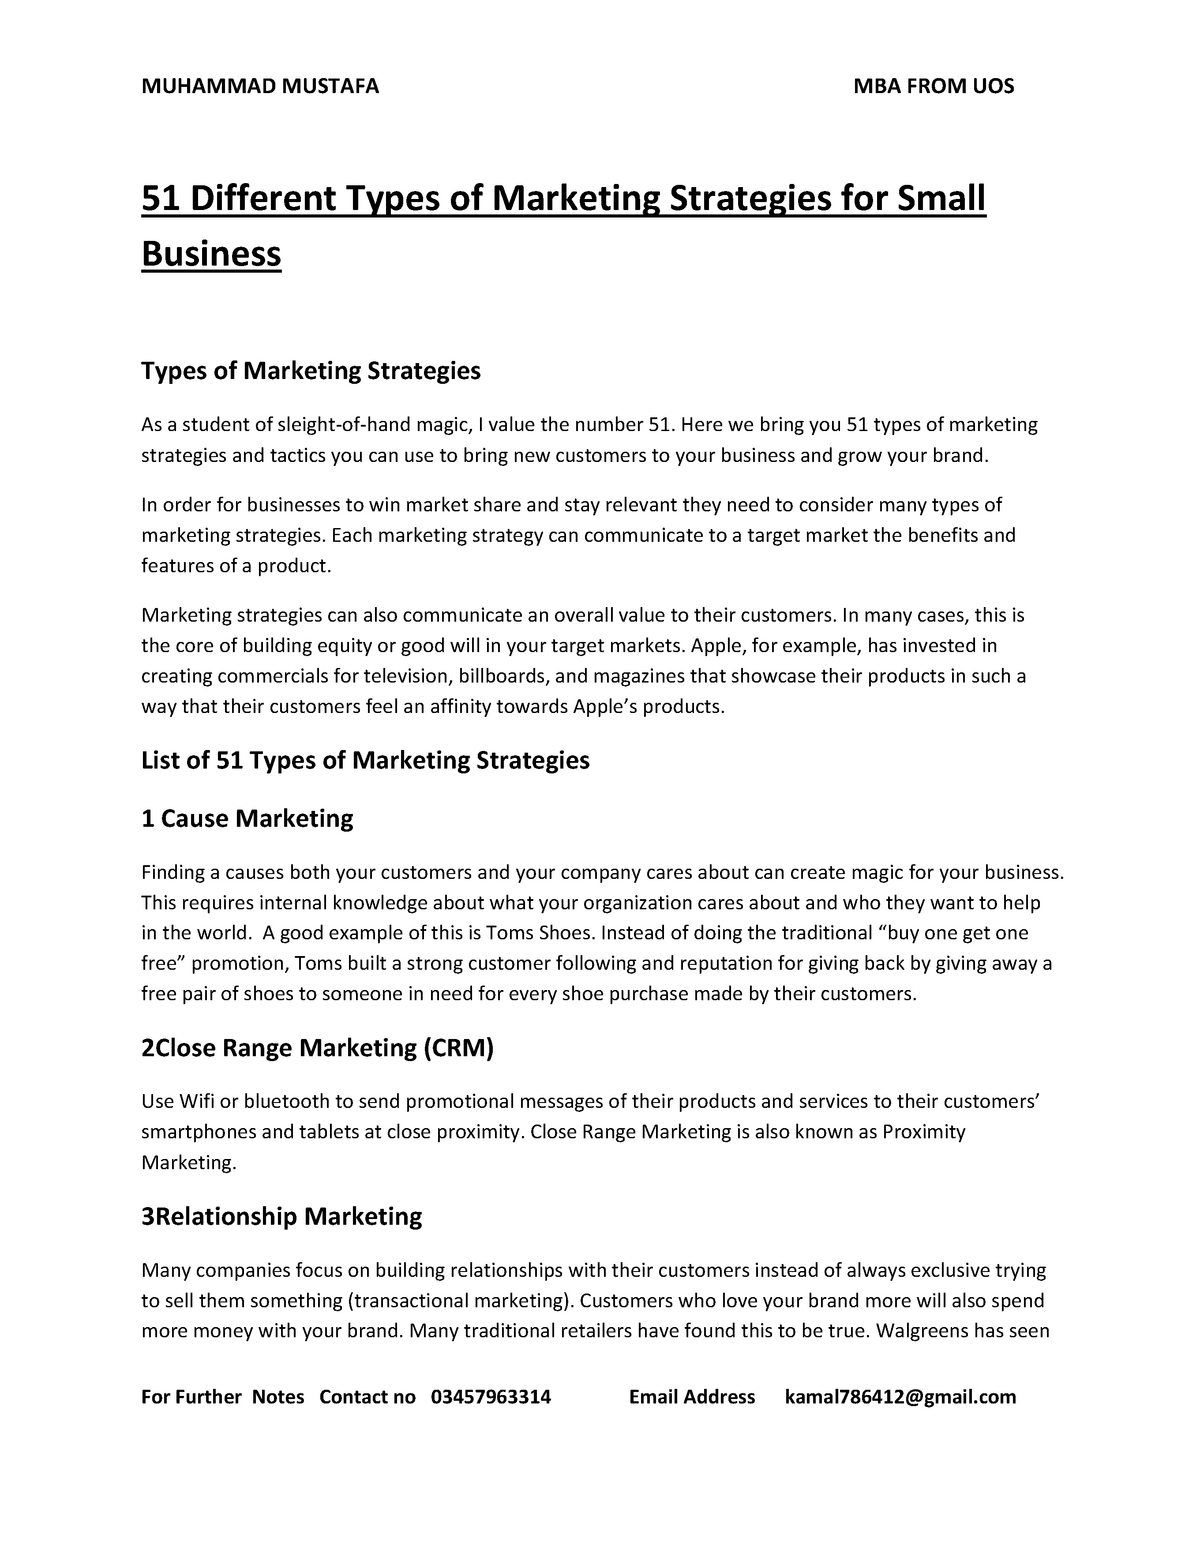 51 Different Types of Marketing Strategies for Small